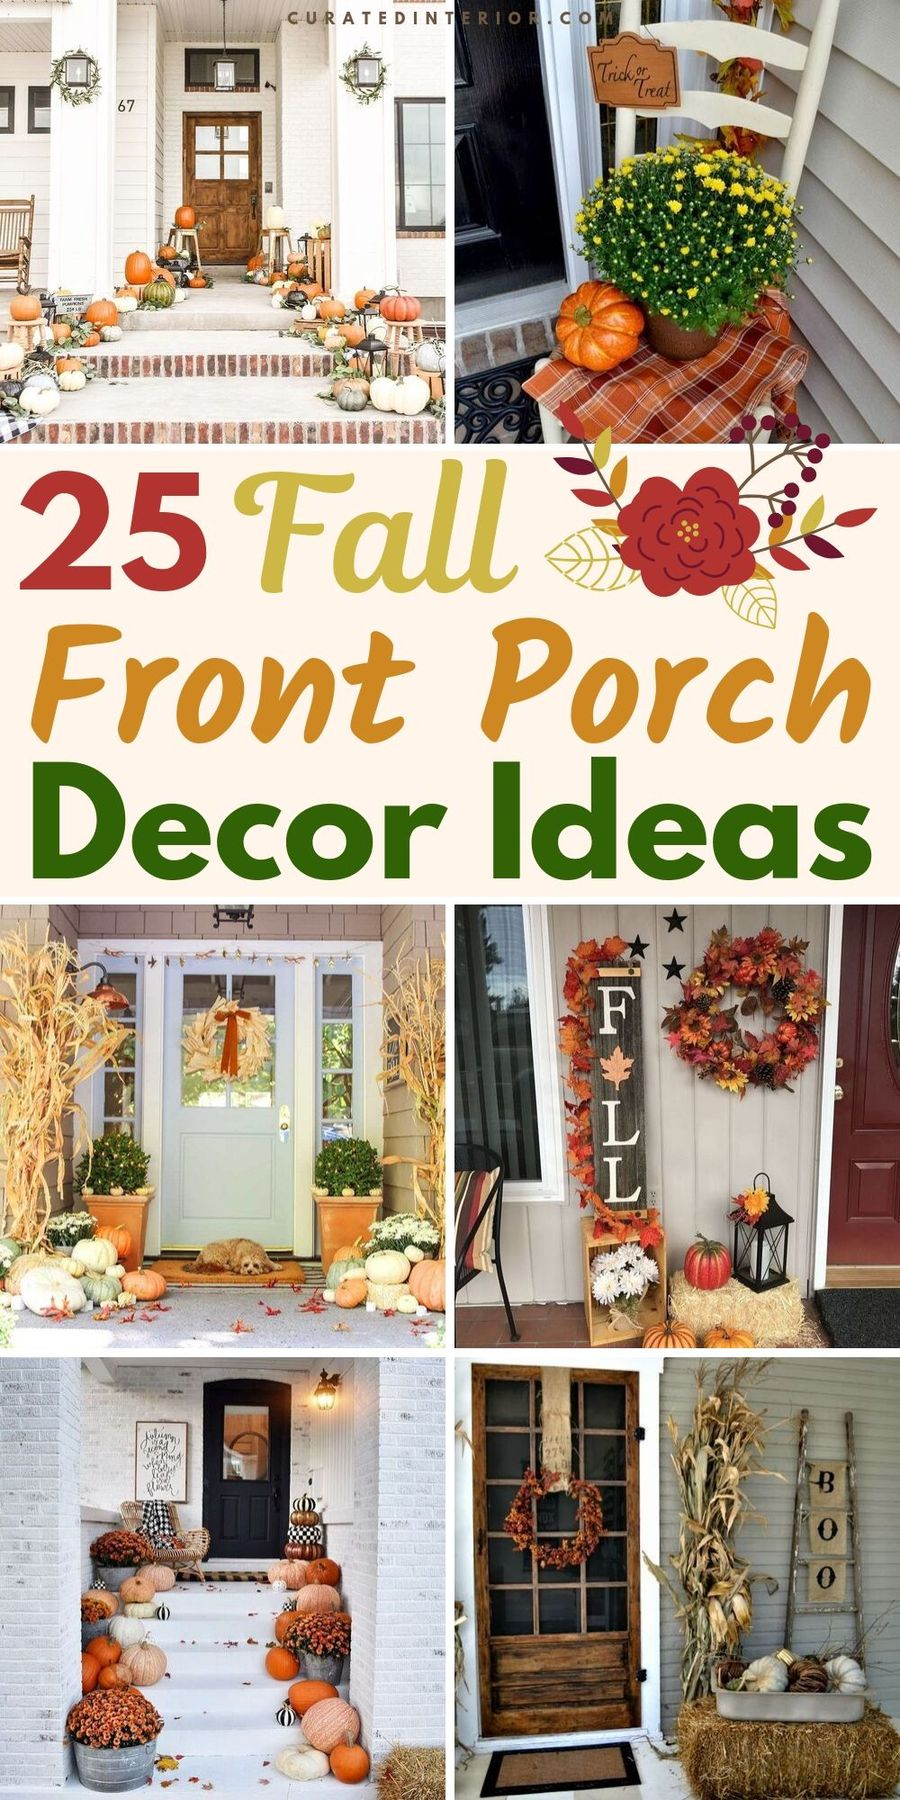 25 Fall Front Porch Decorating Ideas